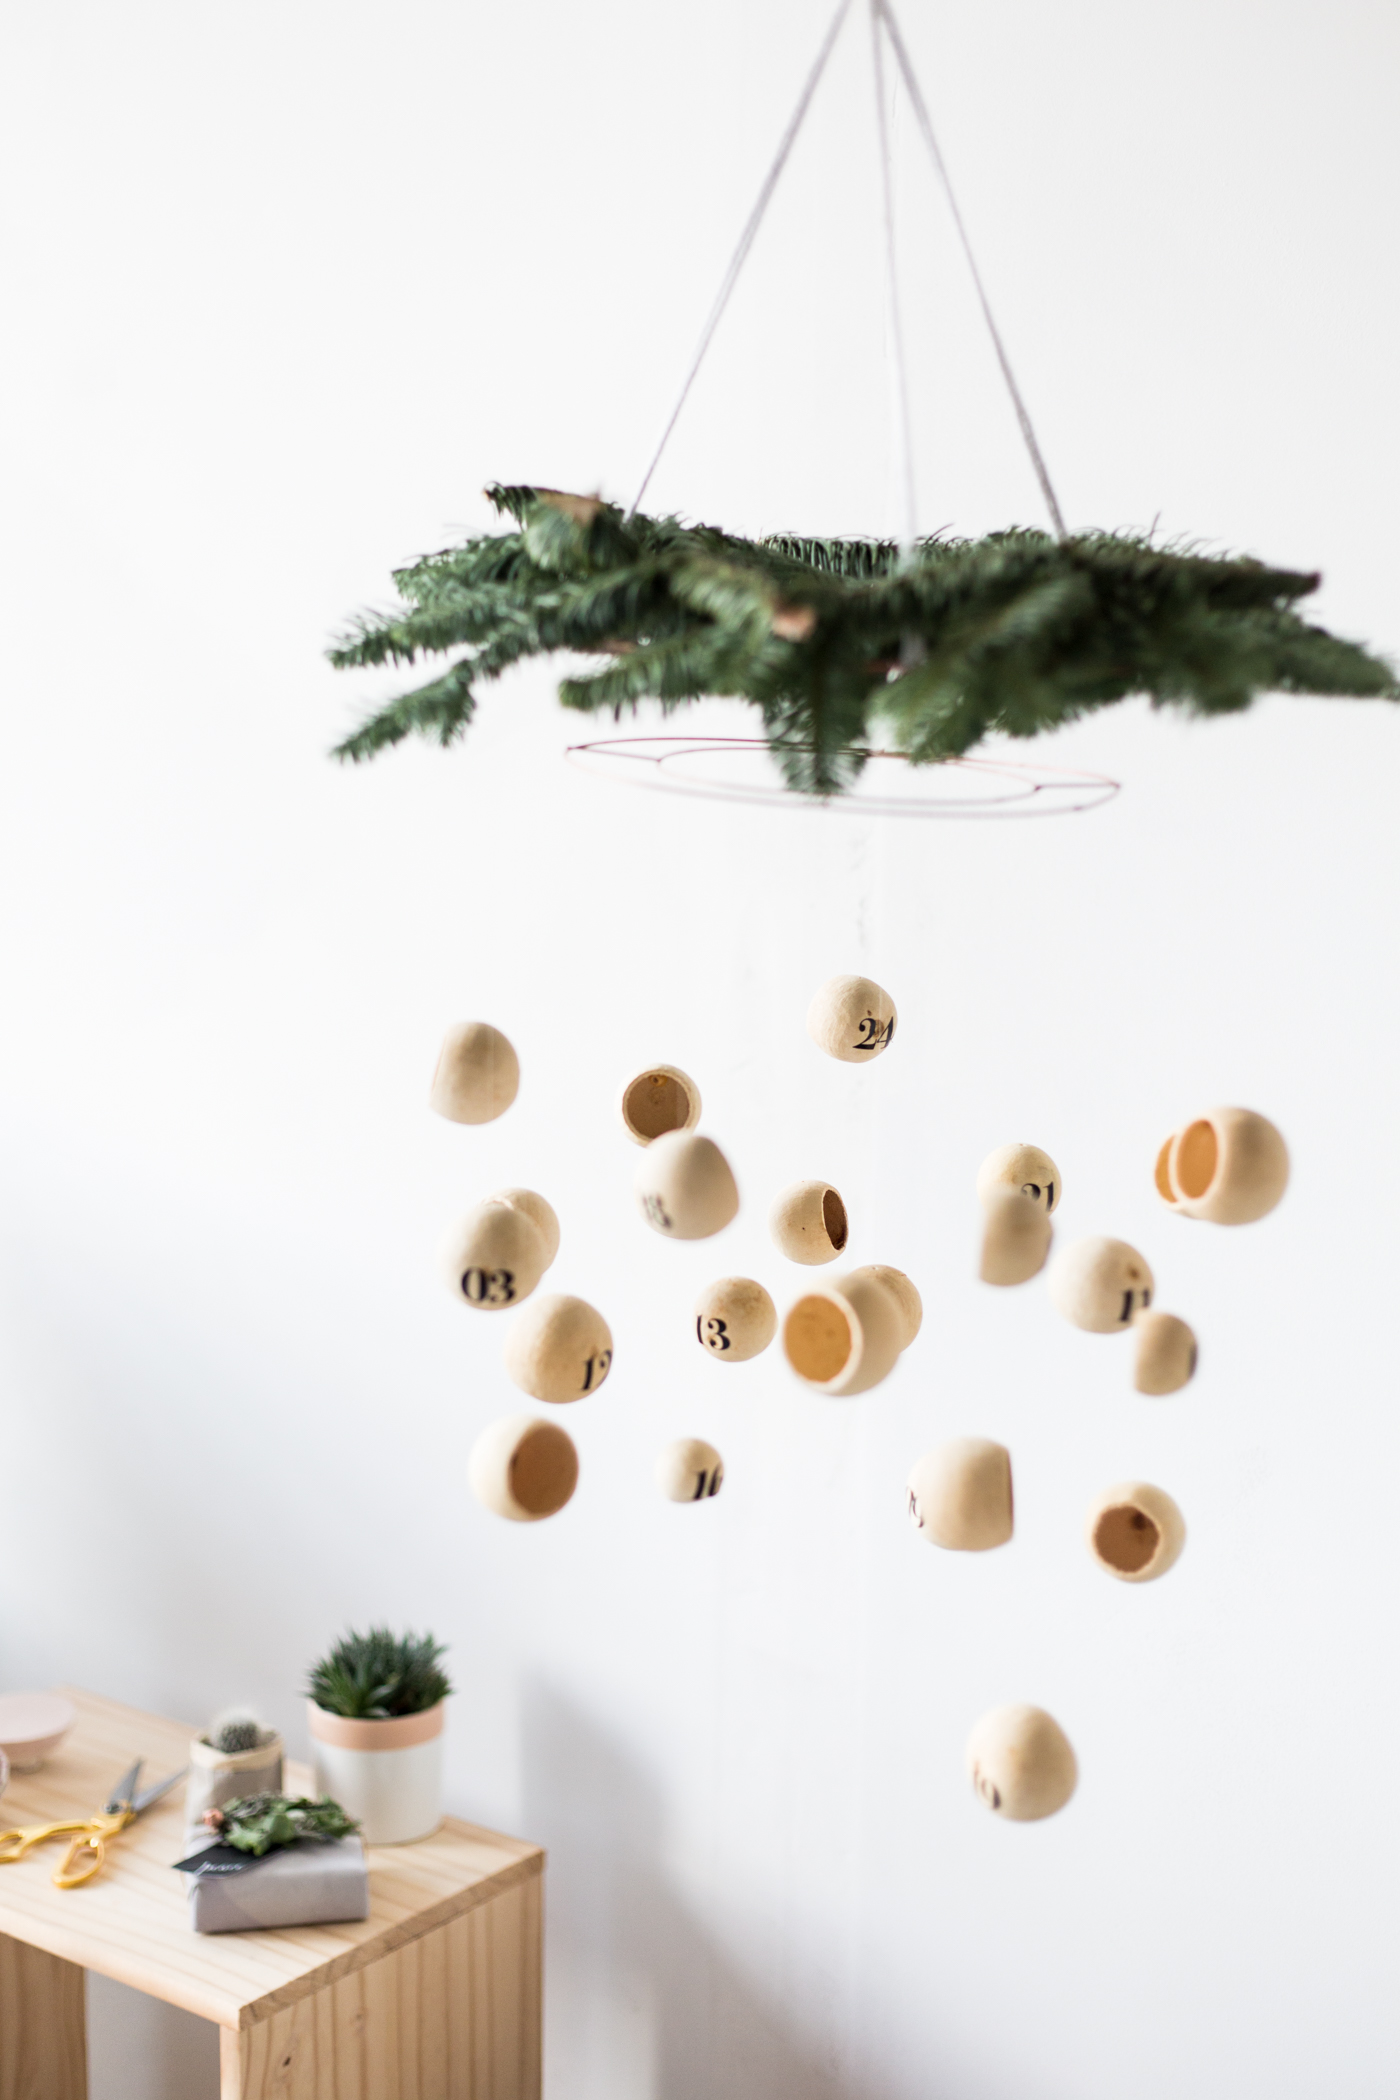 Make a DIY Floating Pod Advent Calendar Mobile | @fallfordiy